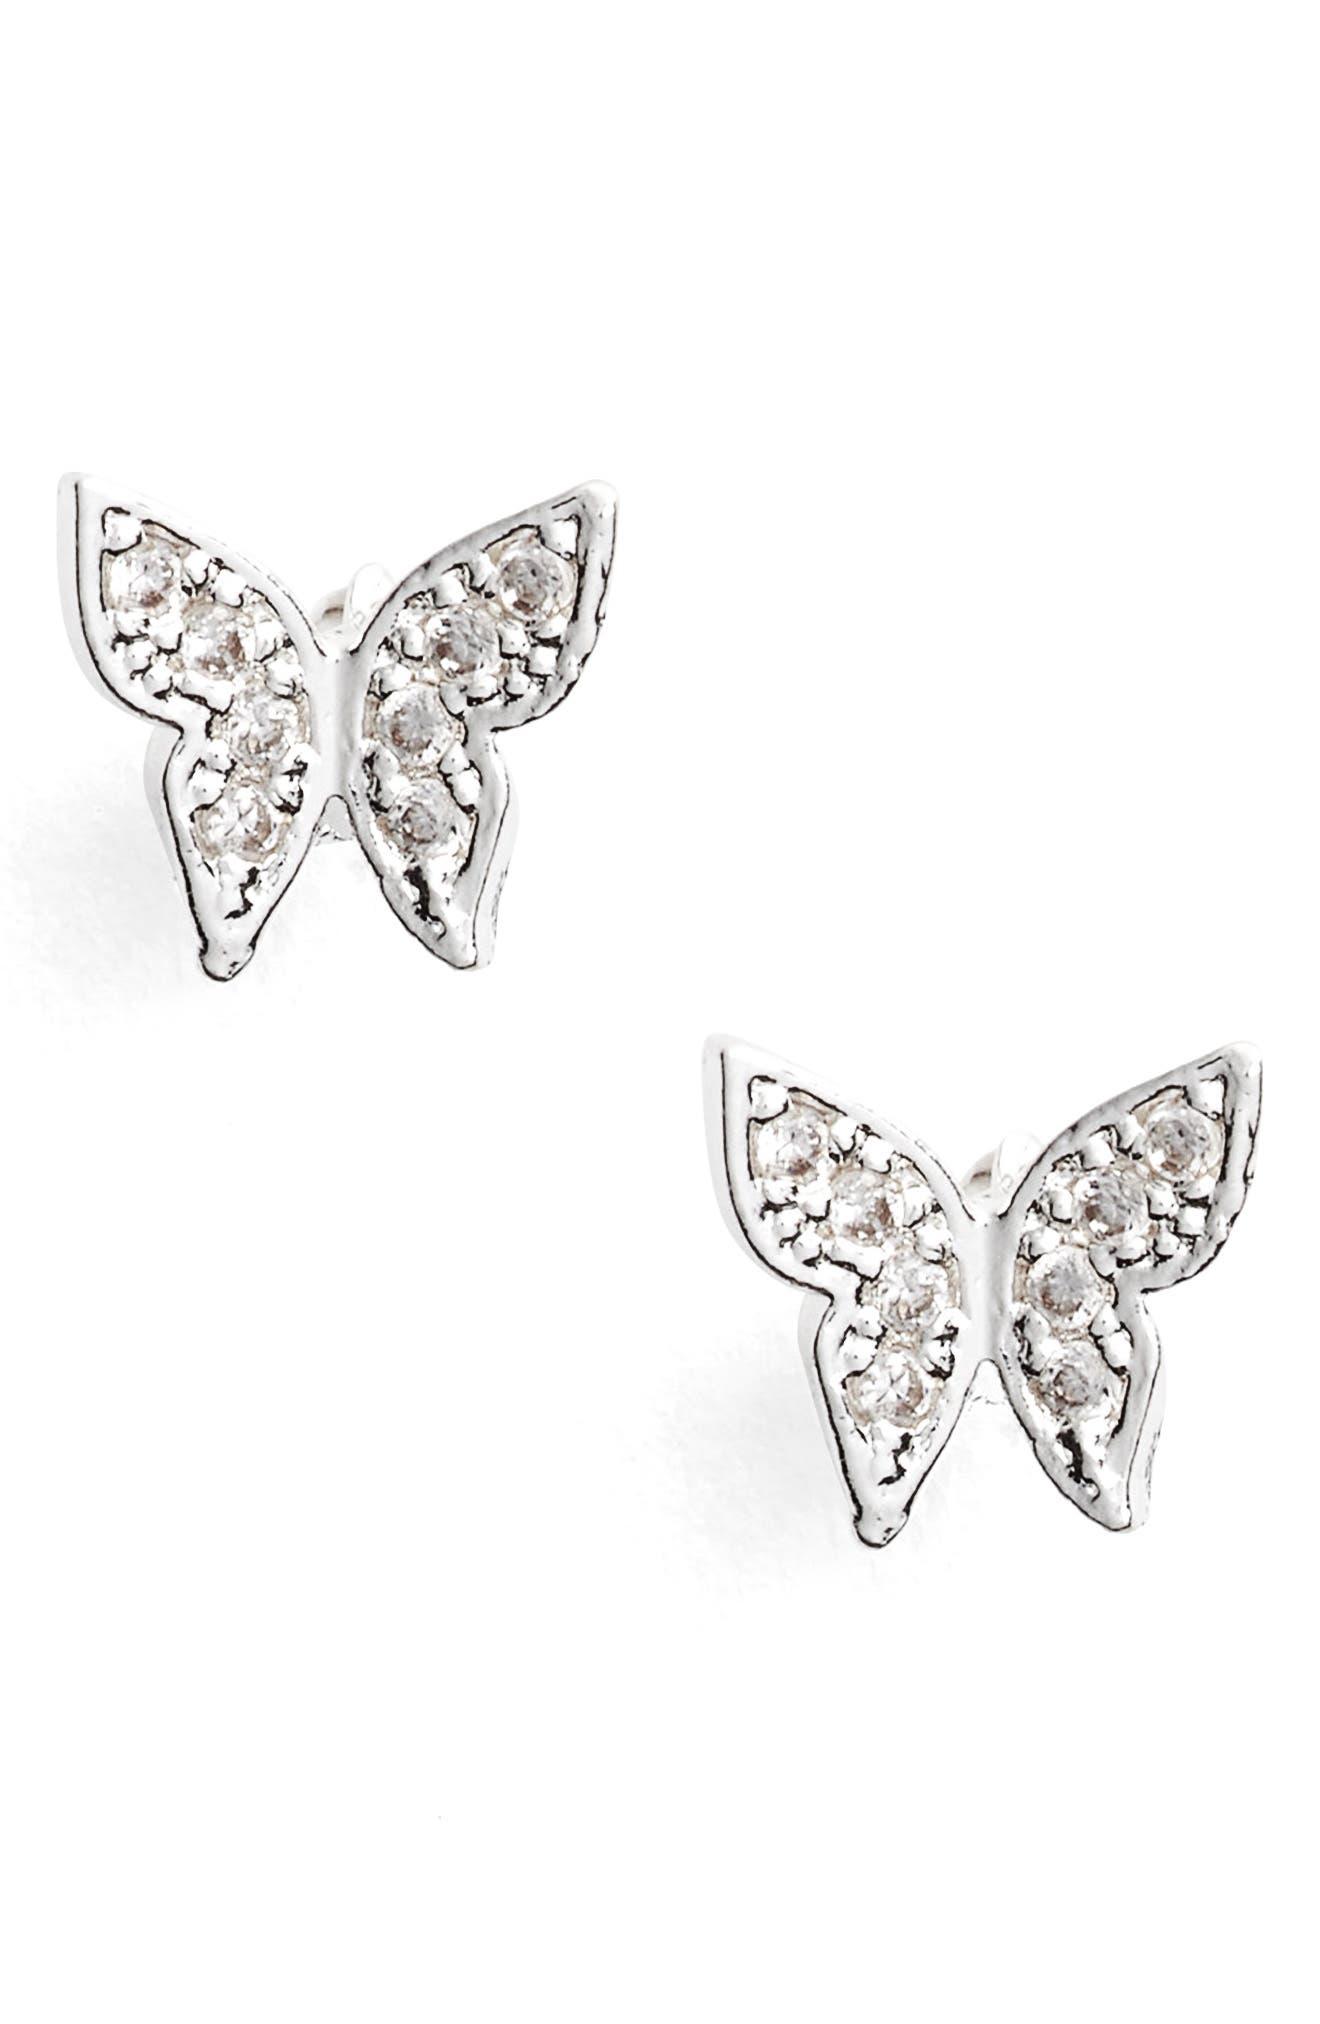 ESTELLA BARTLETT Daydream Believer Stud Earrings